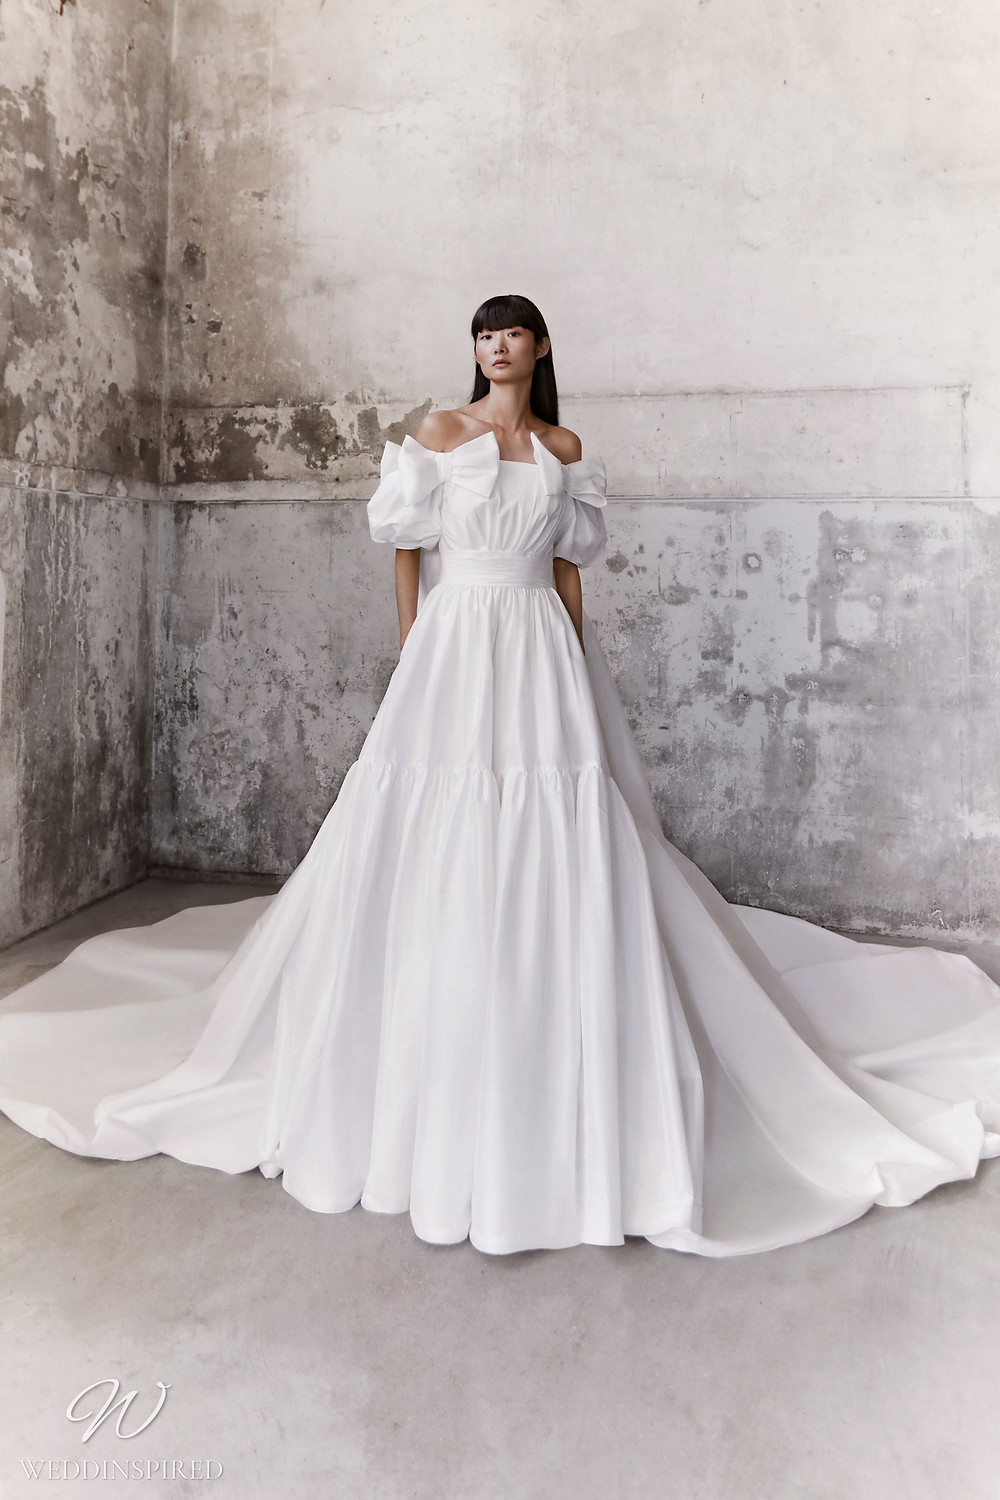 A Viktor & Rolf Fall/Winter 2021 simple off the shoulder A-line wedding dress with bows and a train